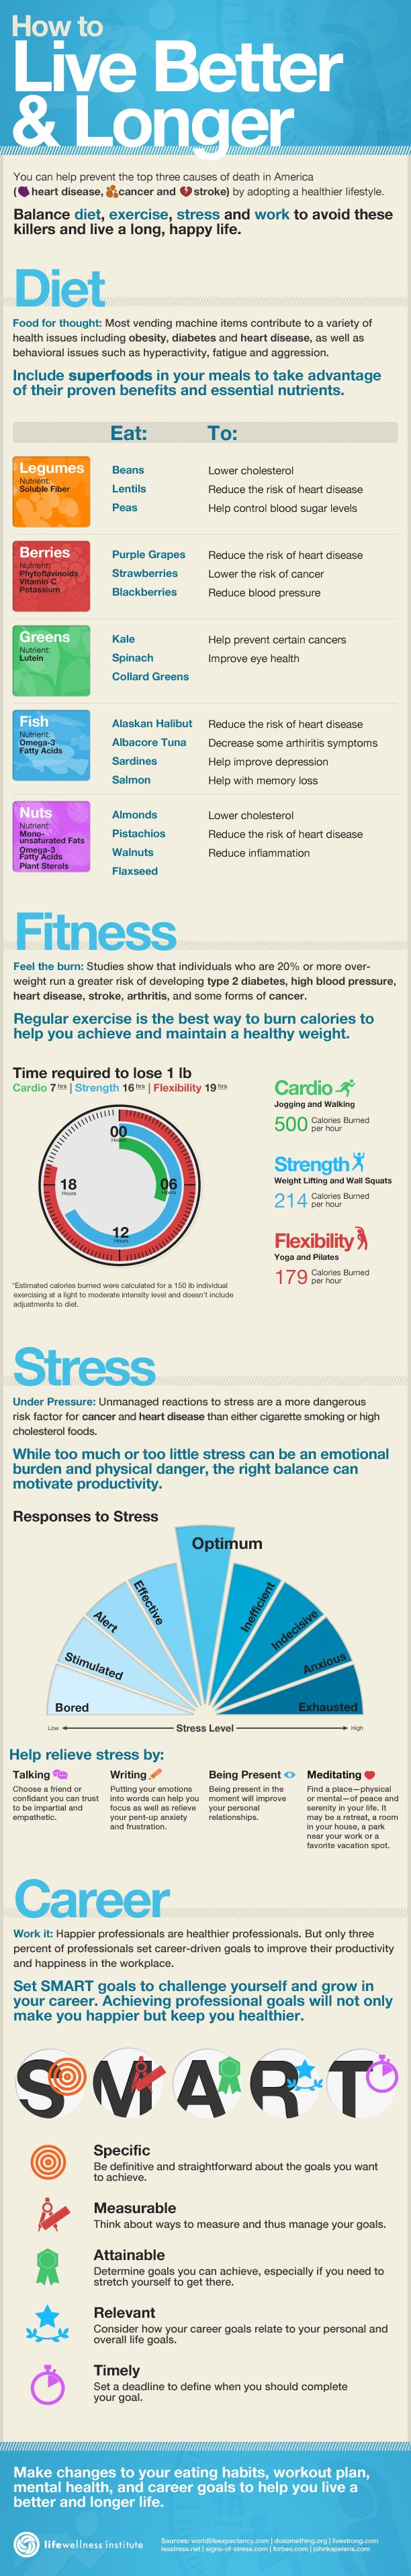 How to Live Longer & Better by Livewellness Institute, infographicposters #Infographic #Health #Wellness #Longer_Life #Live_Wellness_Institute